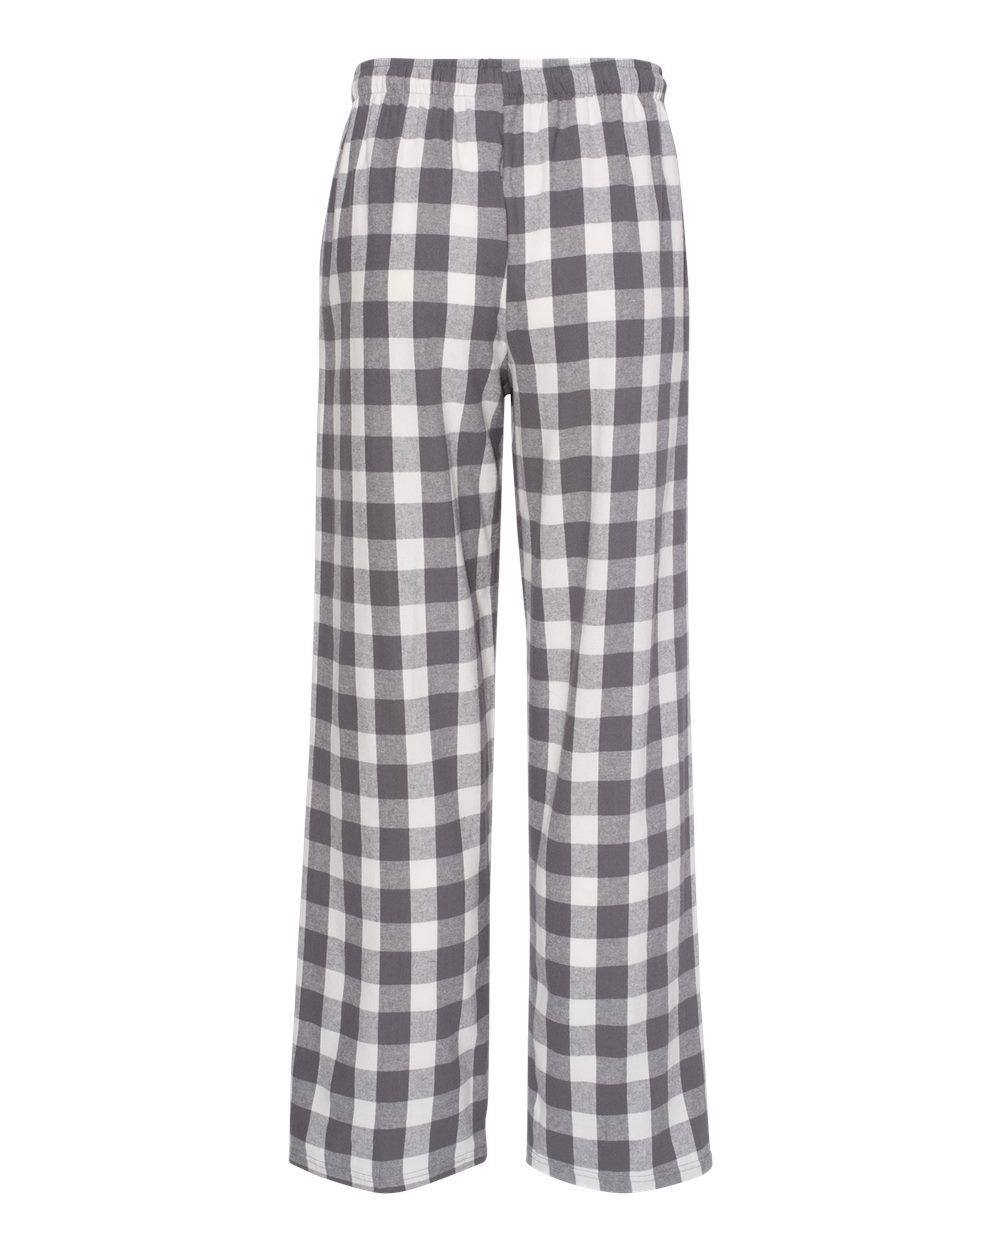 Boxercraft-Unisex-Flannel-Pants-With-Pockets-Pajama-Pants-F20-up-to-2XL thumbnail 34